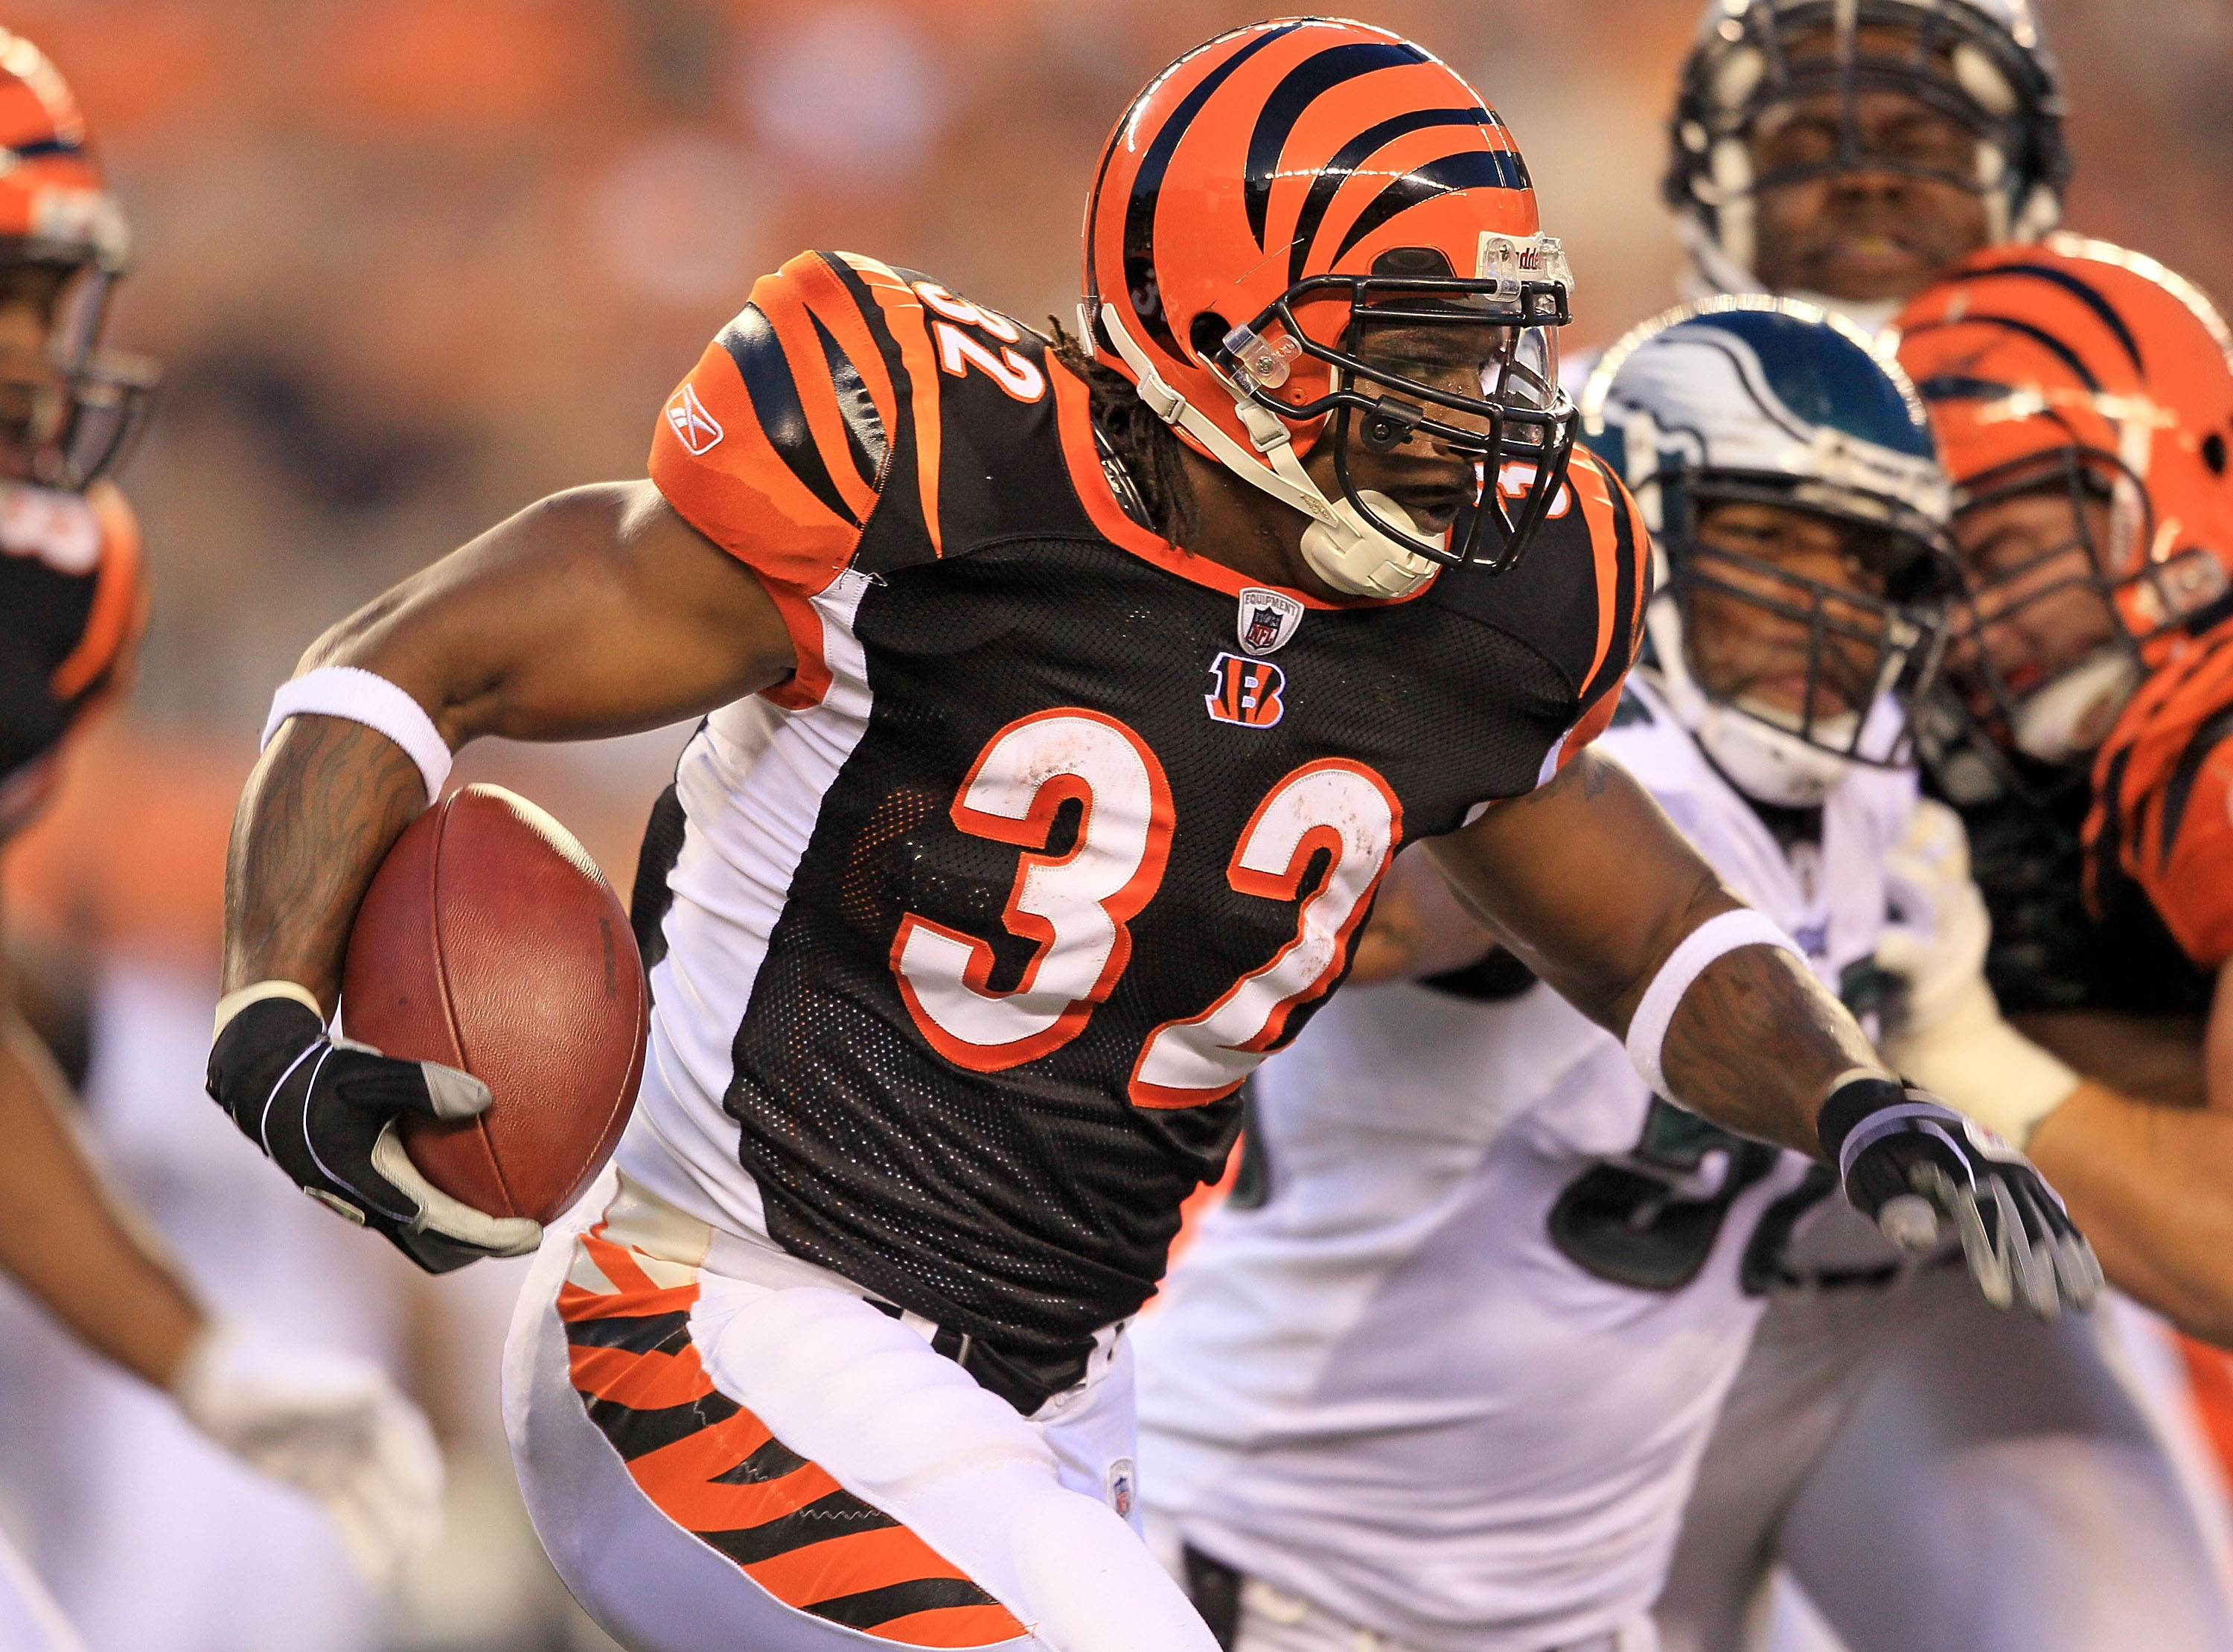 CINCINNATI - AUGUST 20: Cedric Benson #32 of the Cincinnati Bengals runs with the ball during the NFL preseason game against the Philadelphia Eagles at Paul Brown Stadium on August 20, 2010 in Cincinnati, Ohio.  (Photo by Andy Lyons/Getty Images)